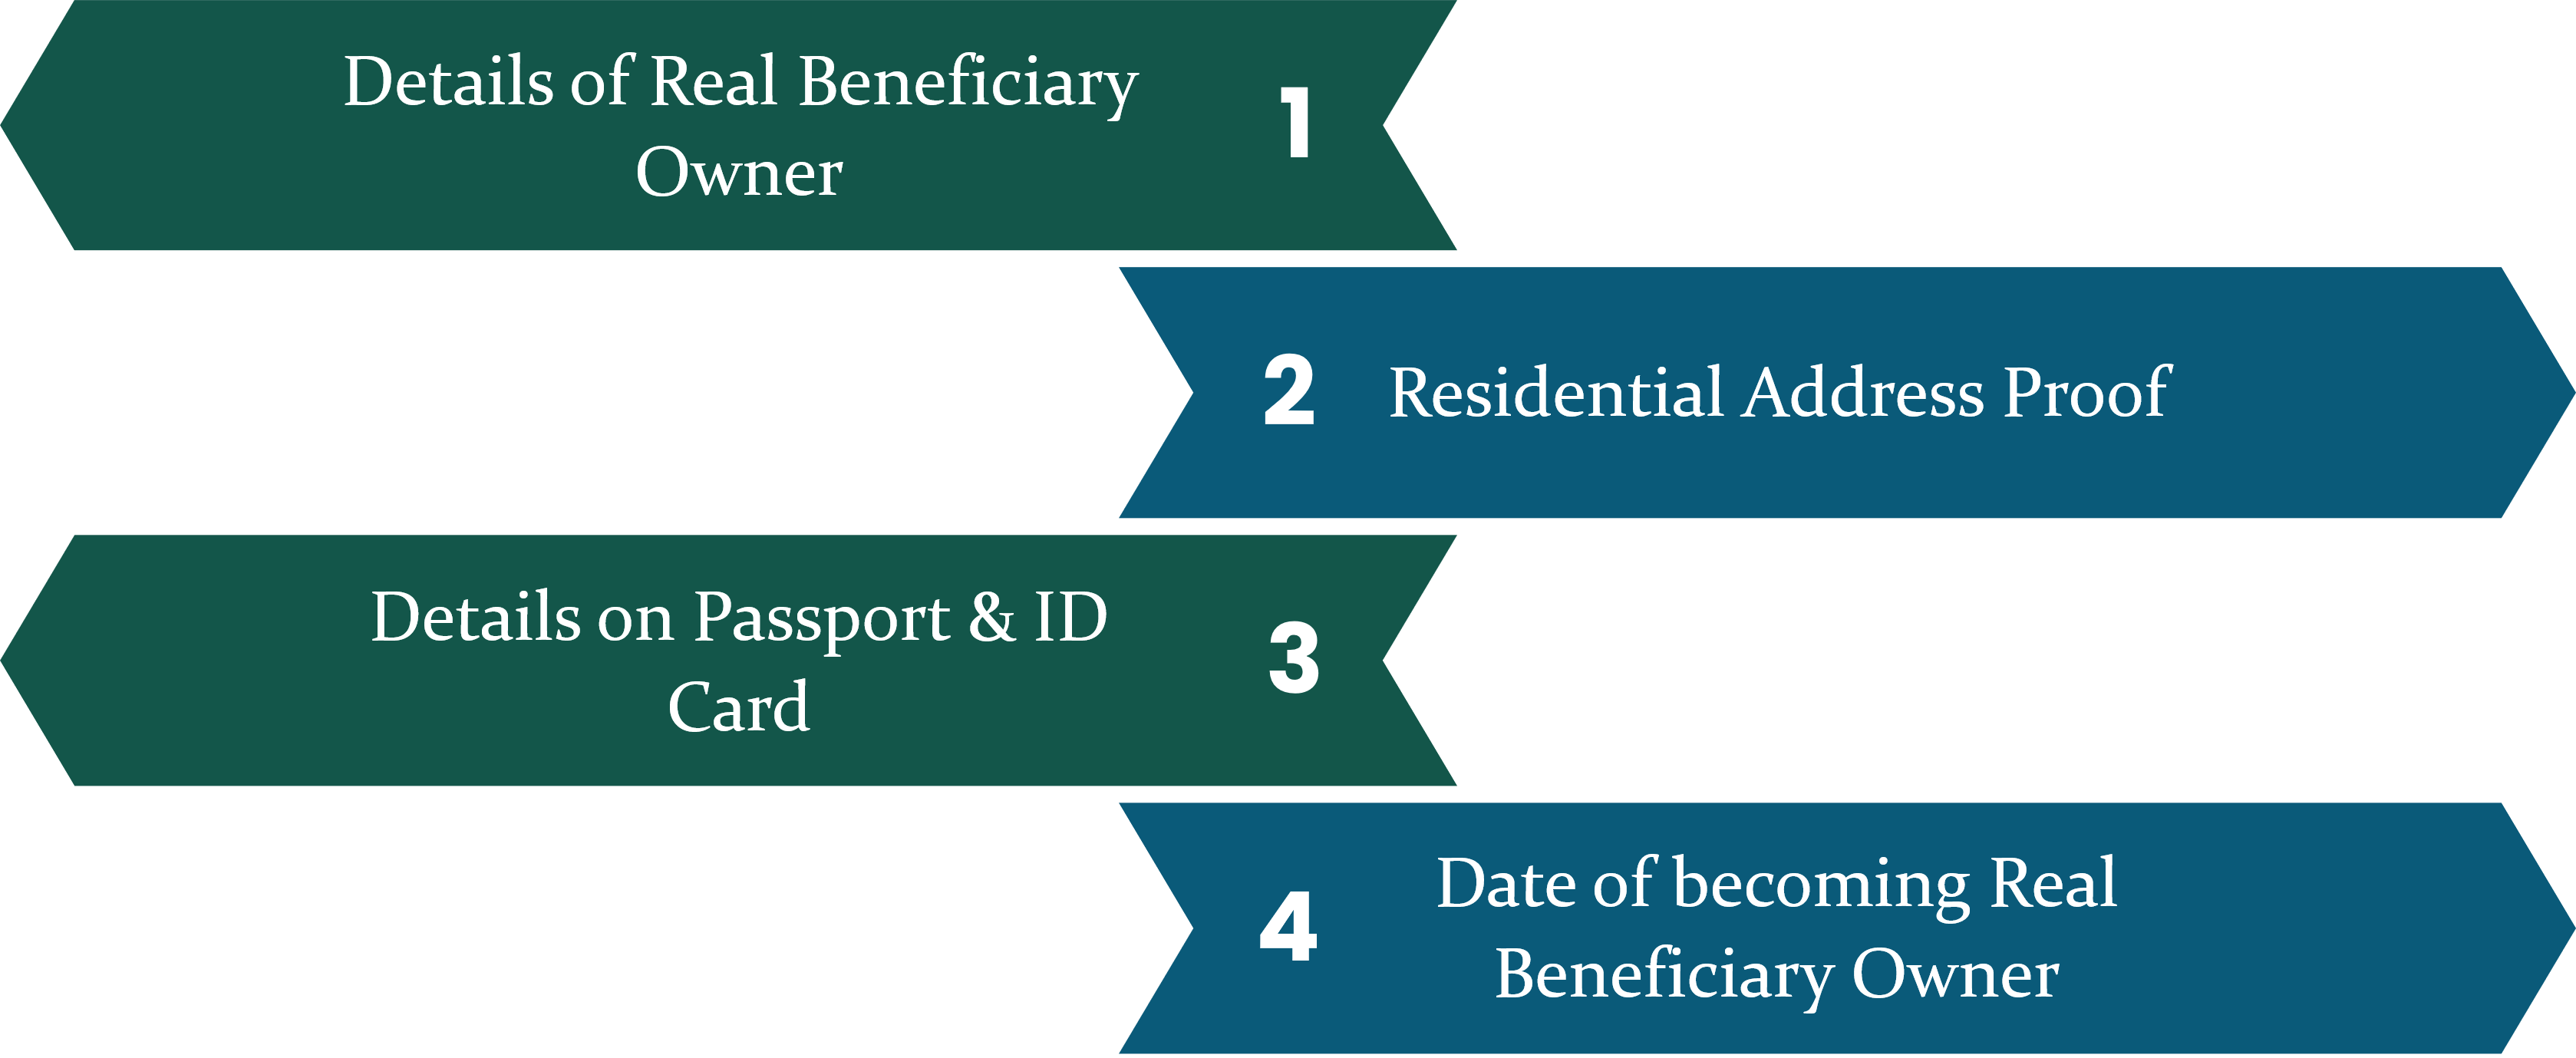 Requirements for Real Beneficiary